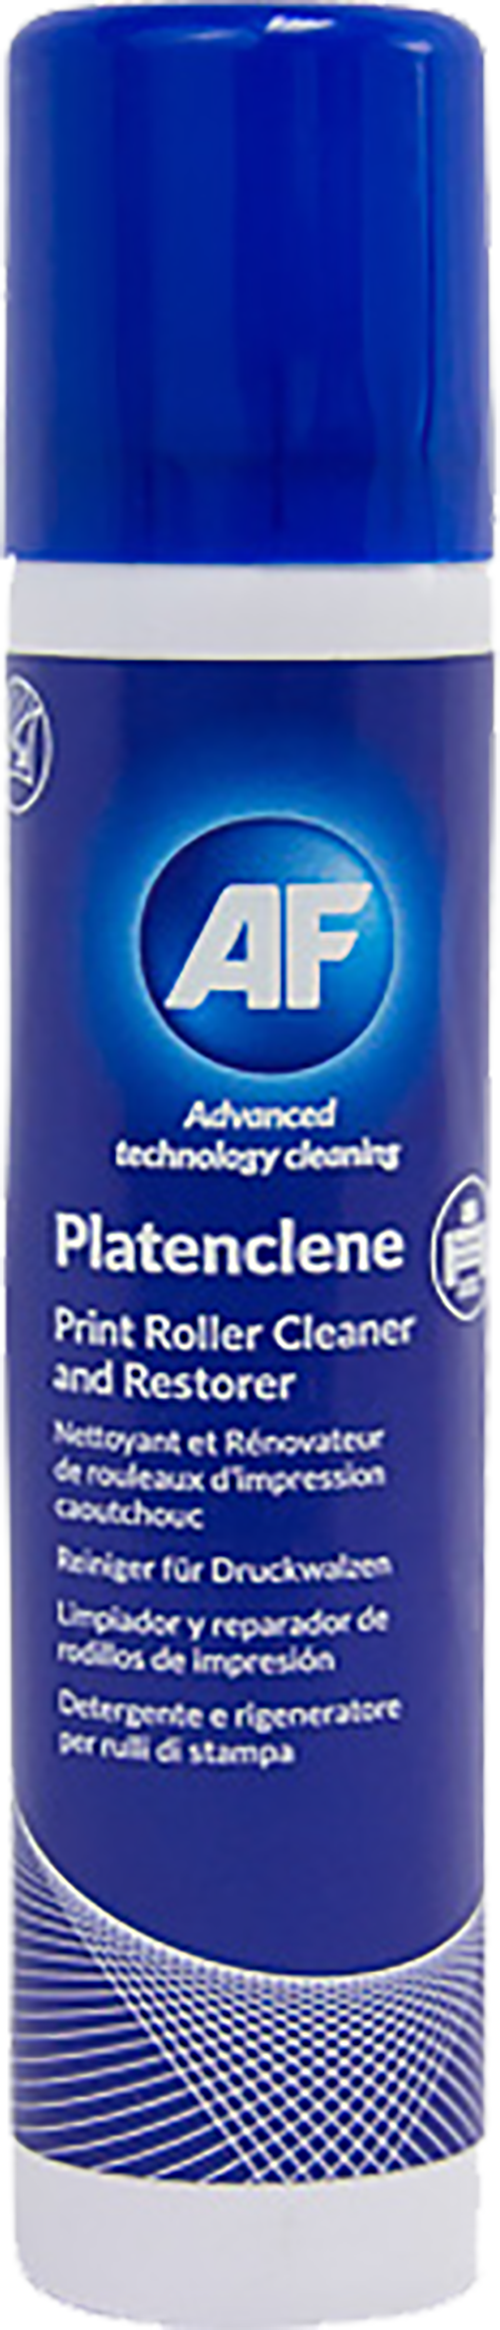 AF Printer roller cleaner